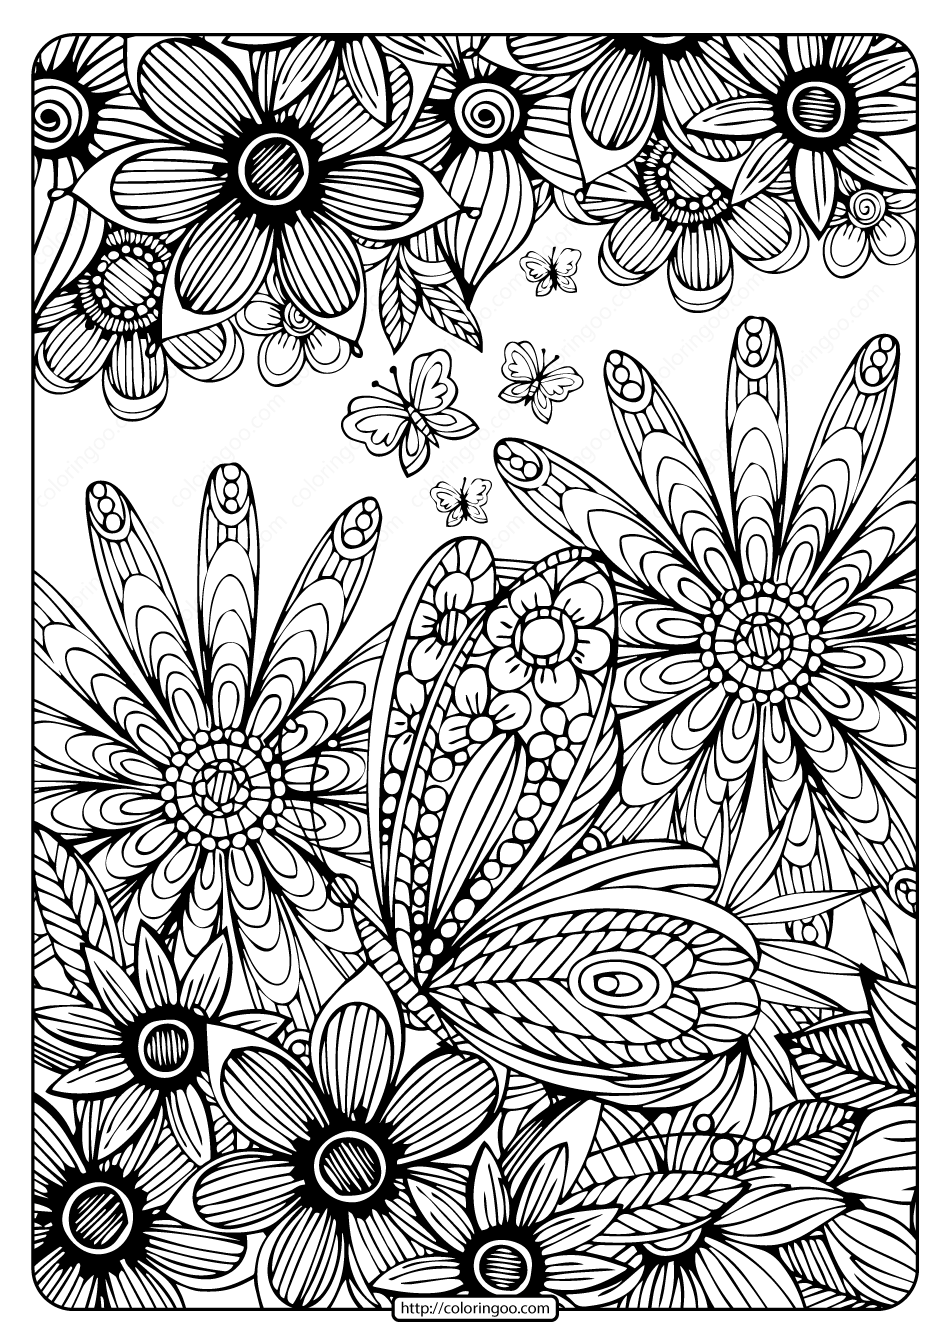 Printable Coloring Book Pages For Adults 004 High Quality Free Printable Coloring Drawing Paintin Printable Coloring Book Coloring Book Pages Coloring Books